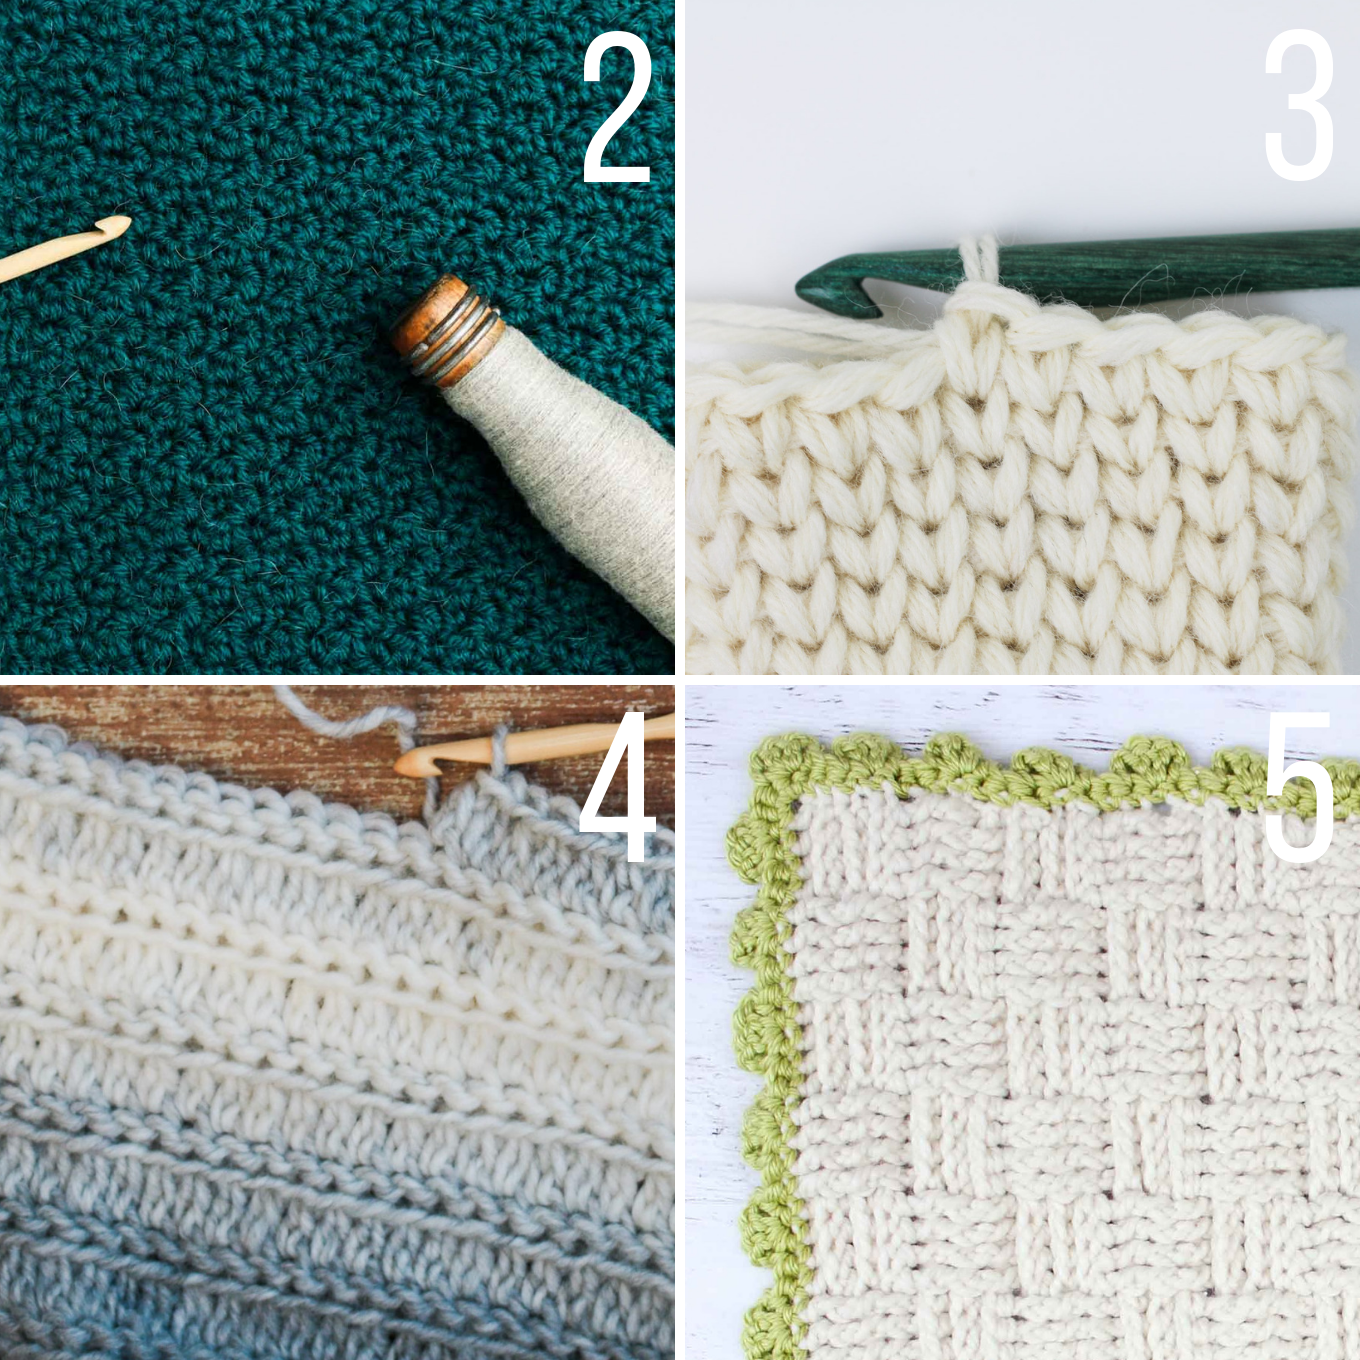 This collection of crochet stitches for blankets and afghans includes several video tutorials that are perfect for beginners.